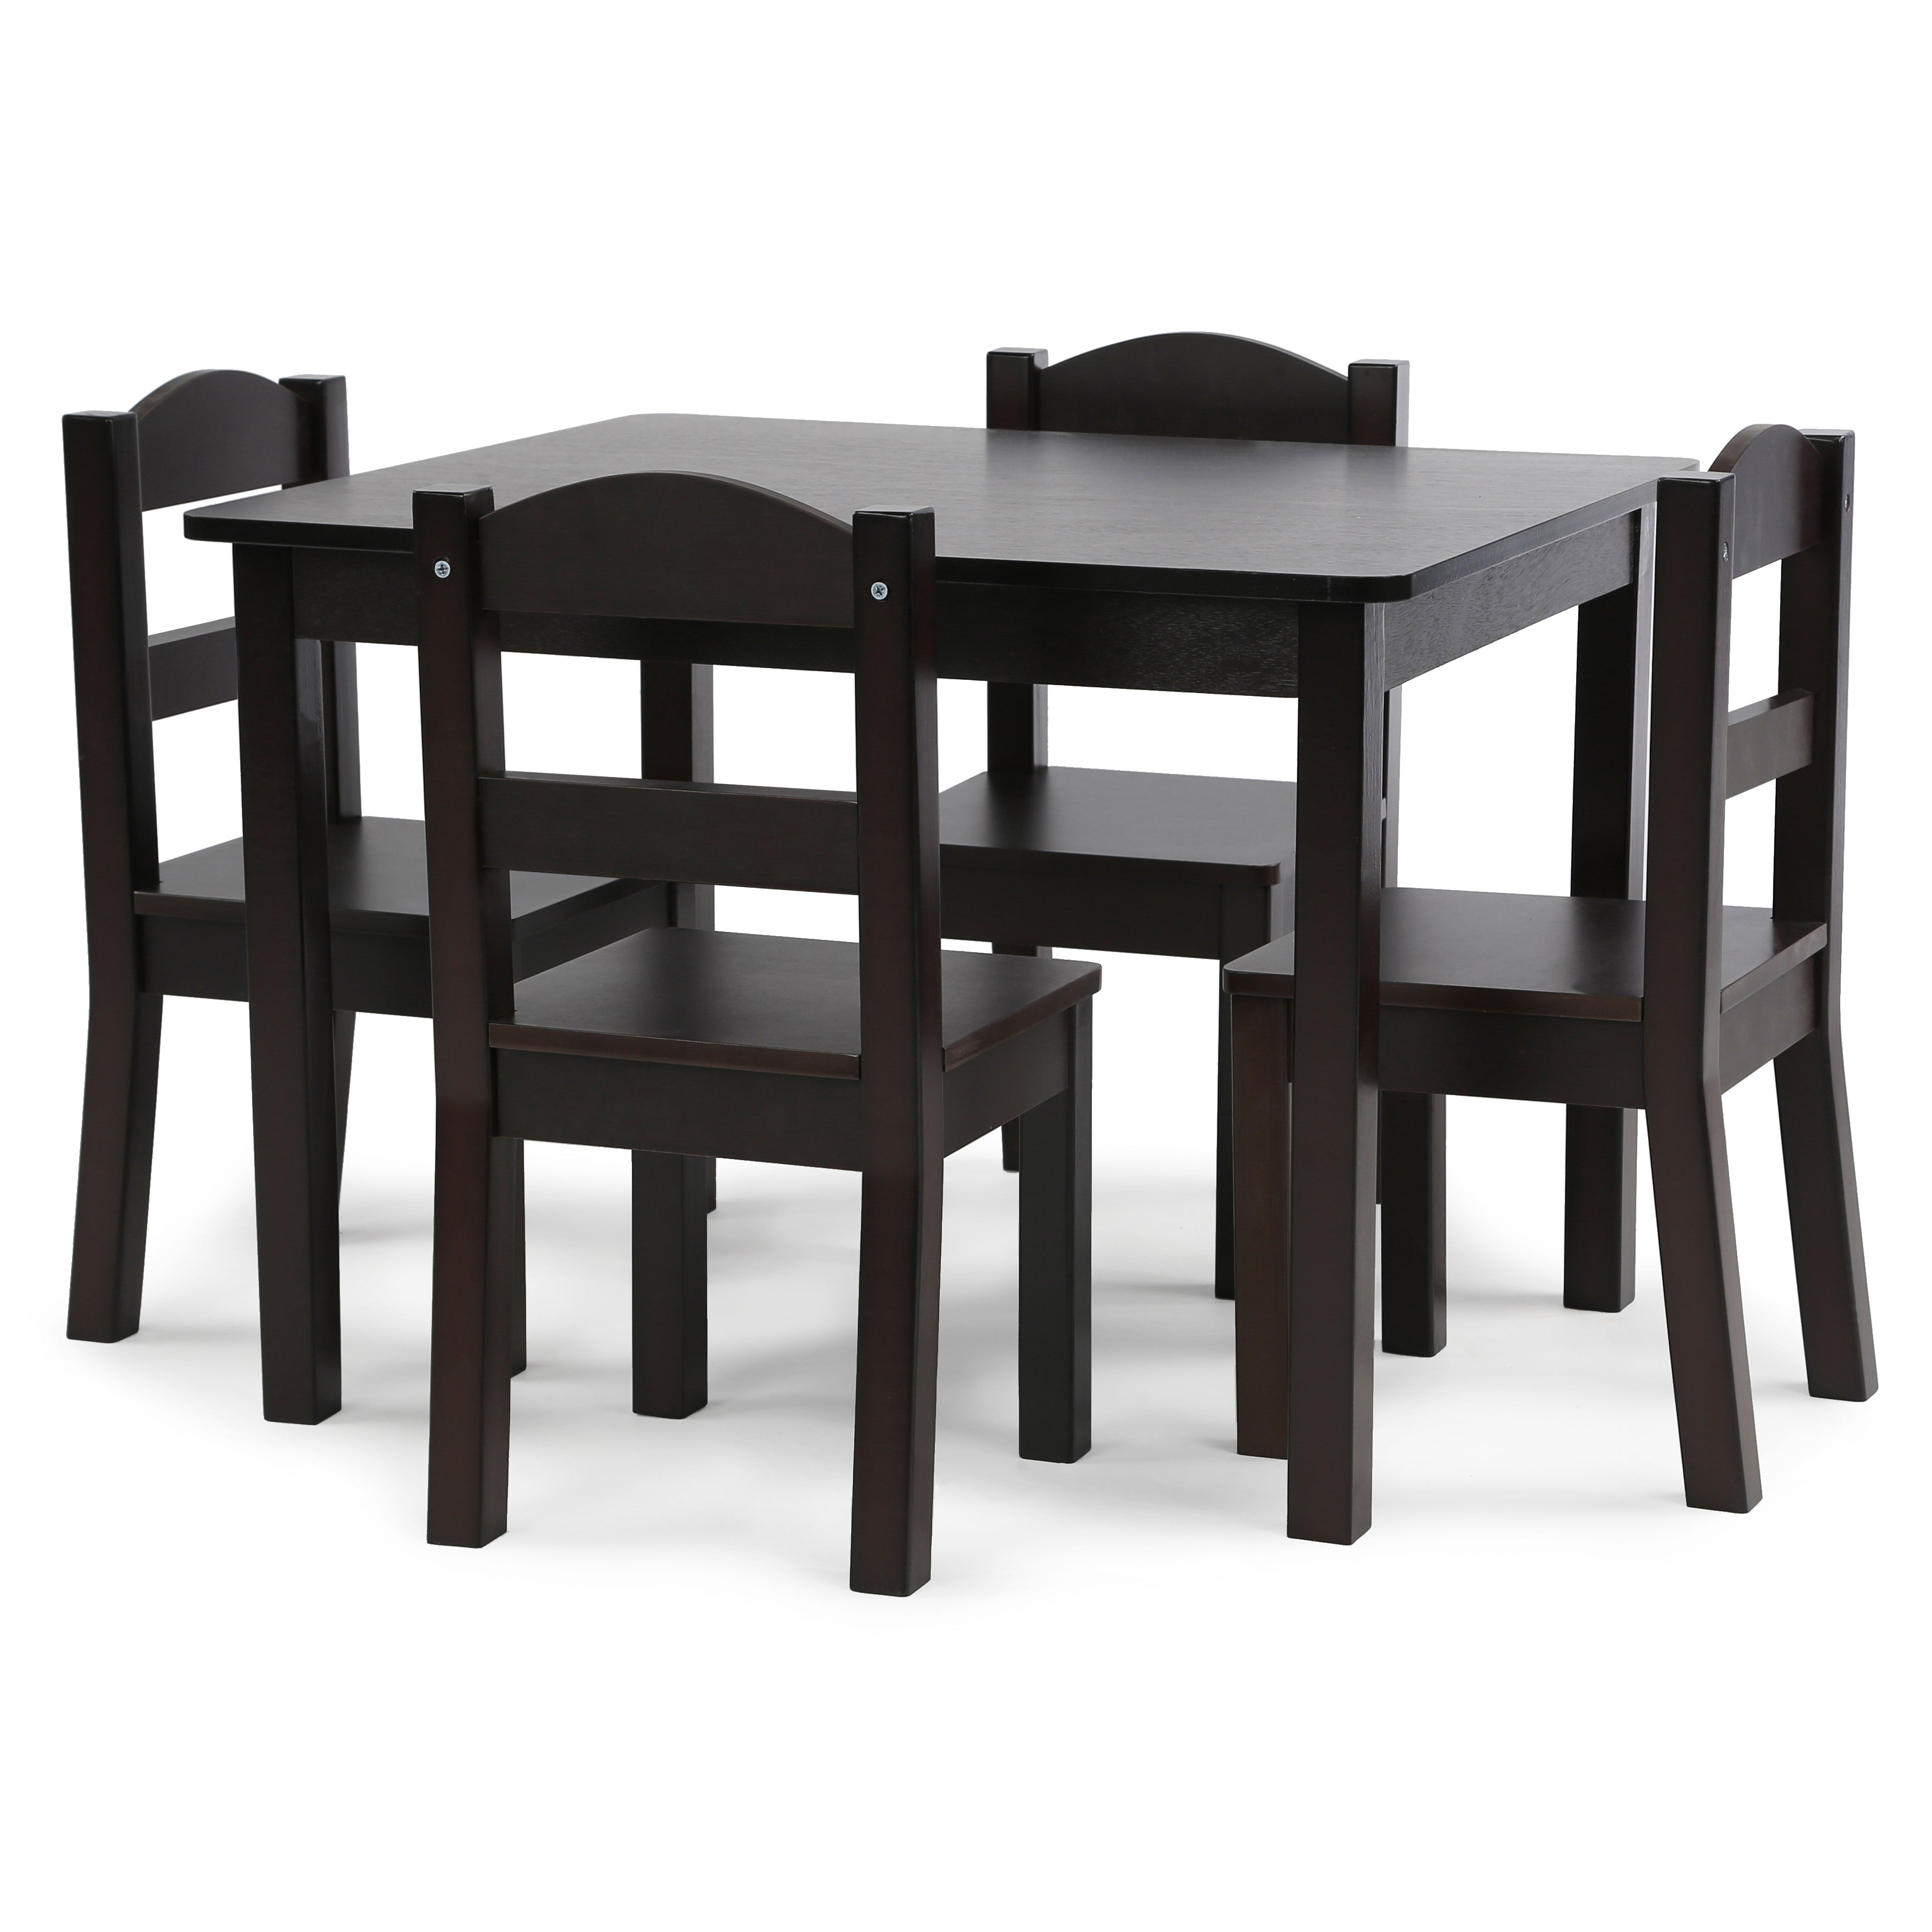 Espresso Kids Wood Table and 4 Chairs Set